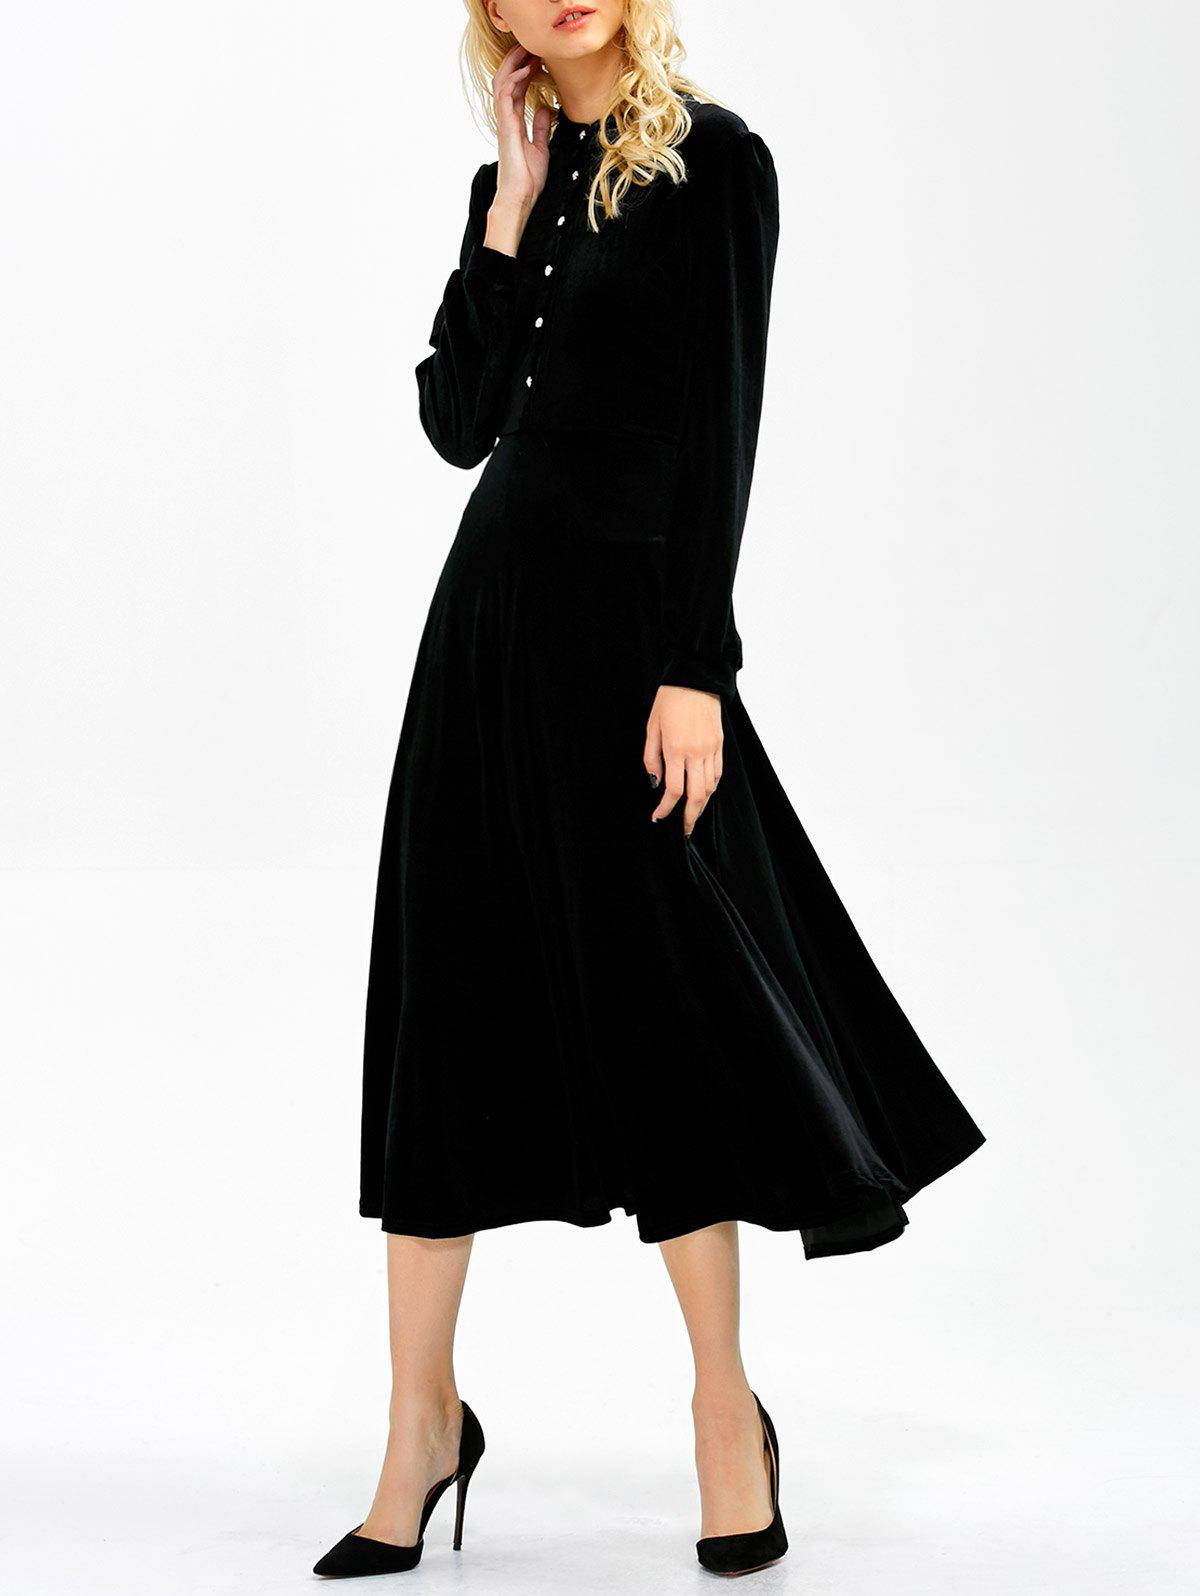 Long Sleeve Button Velvet Midi DressWOMEN<br><br>Size: 2XL; Color: BLACK; Style: Casual; Material: Polyester; Silhouette: A-Line; Dresses Length: Mid-Calf; Neckline: Stand; Sleeve Length: Long Sleeves; Embellishment: Button; Pattern Type: Solid; With Belt: No; Season: Fall,Spring; Weight: 0.350kg; Package Contents: 1 x Dress;